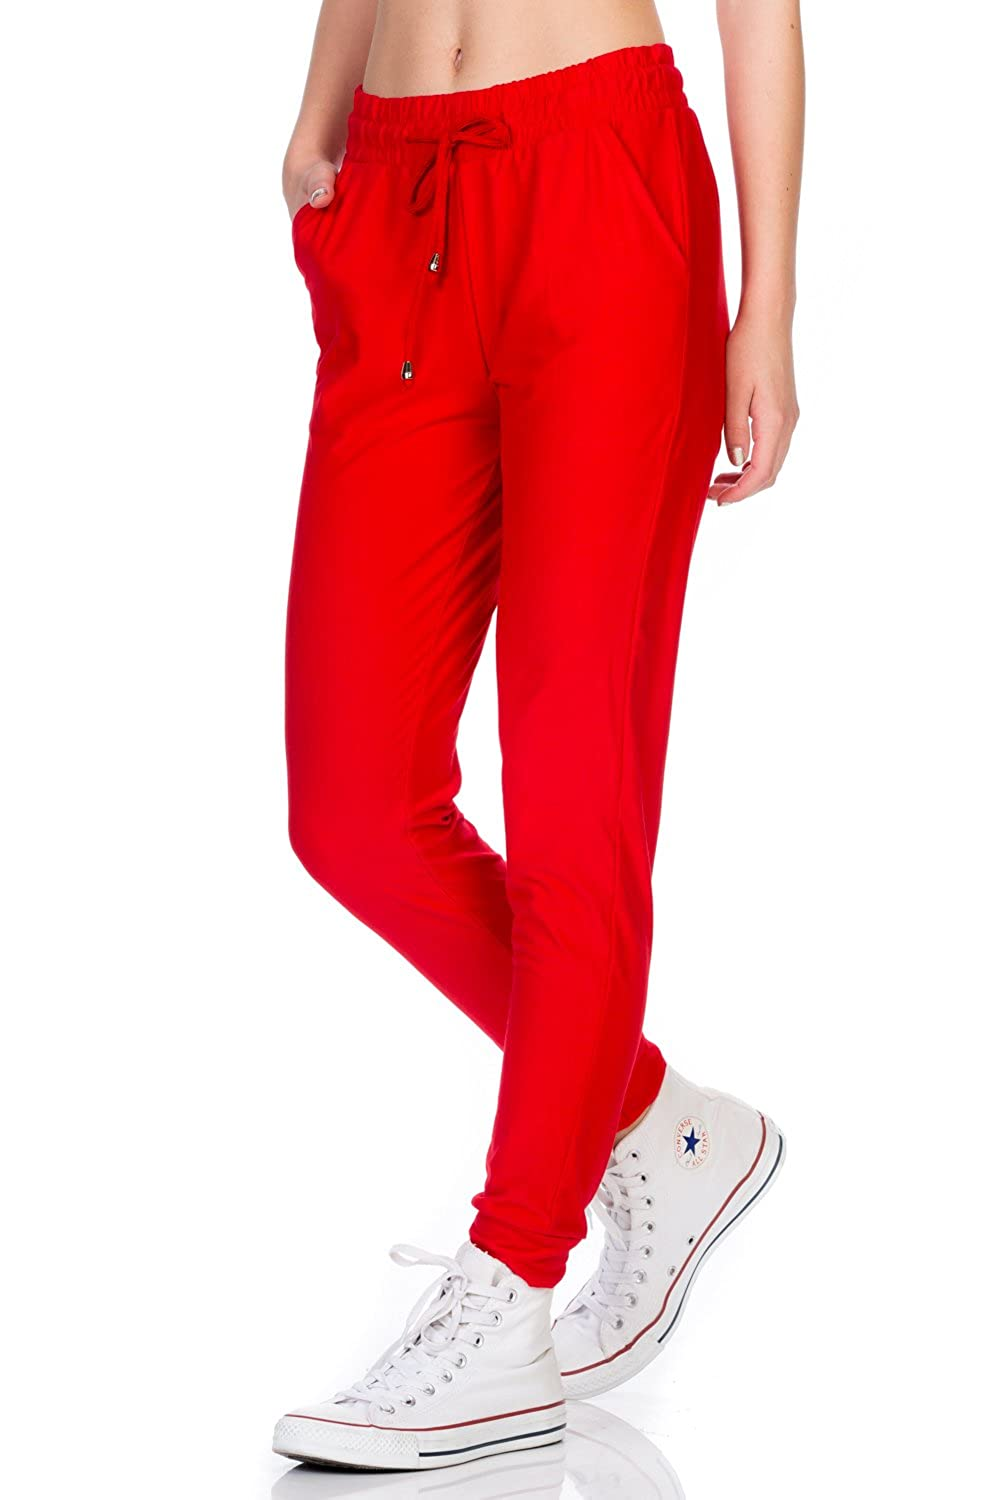 Cherry Red My Yuccie Women's Super Soft Comfy Print Jogger Pants with Zipper Side Pockets (S  XL)